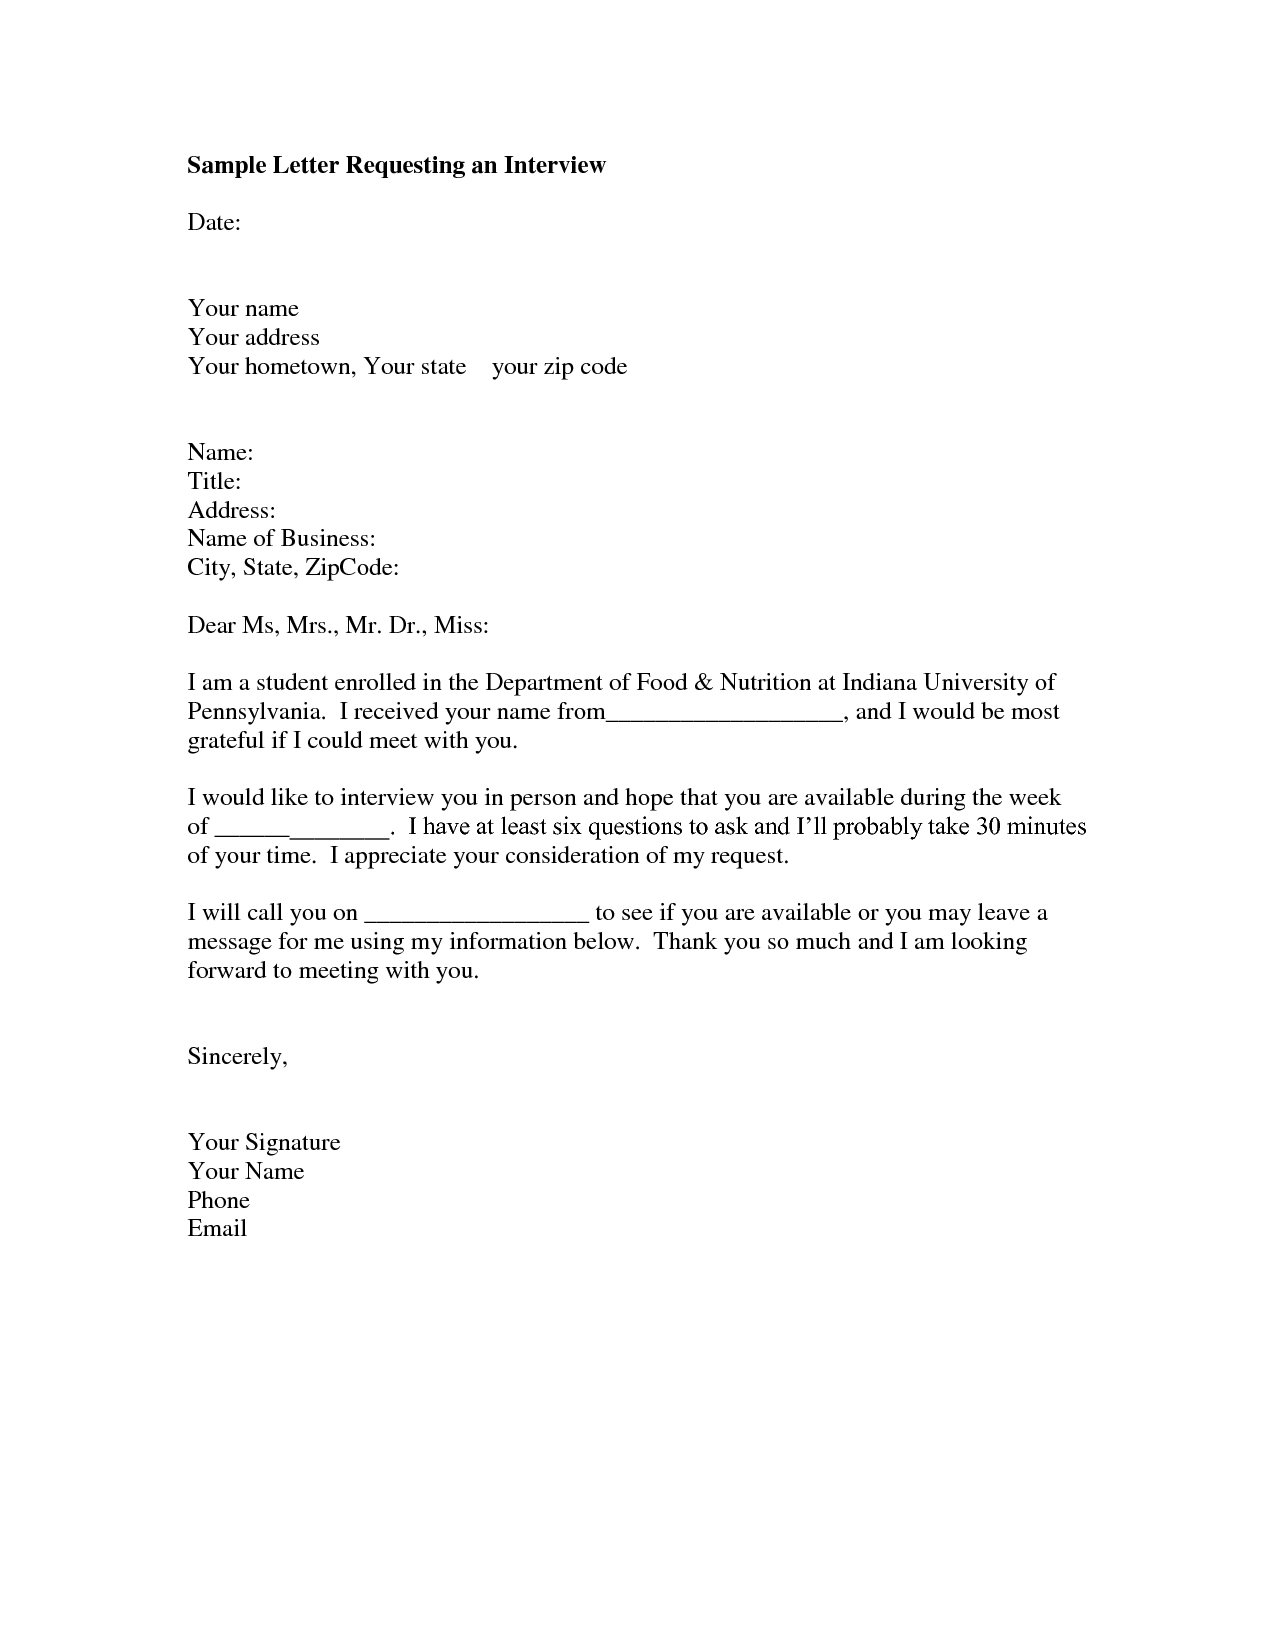 Interview request letter sample format of a letter you can use to interview request letter sample format of a letter you can use to request an interview with a prospecitive employer spiritdancerdesigns Image collections